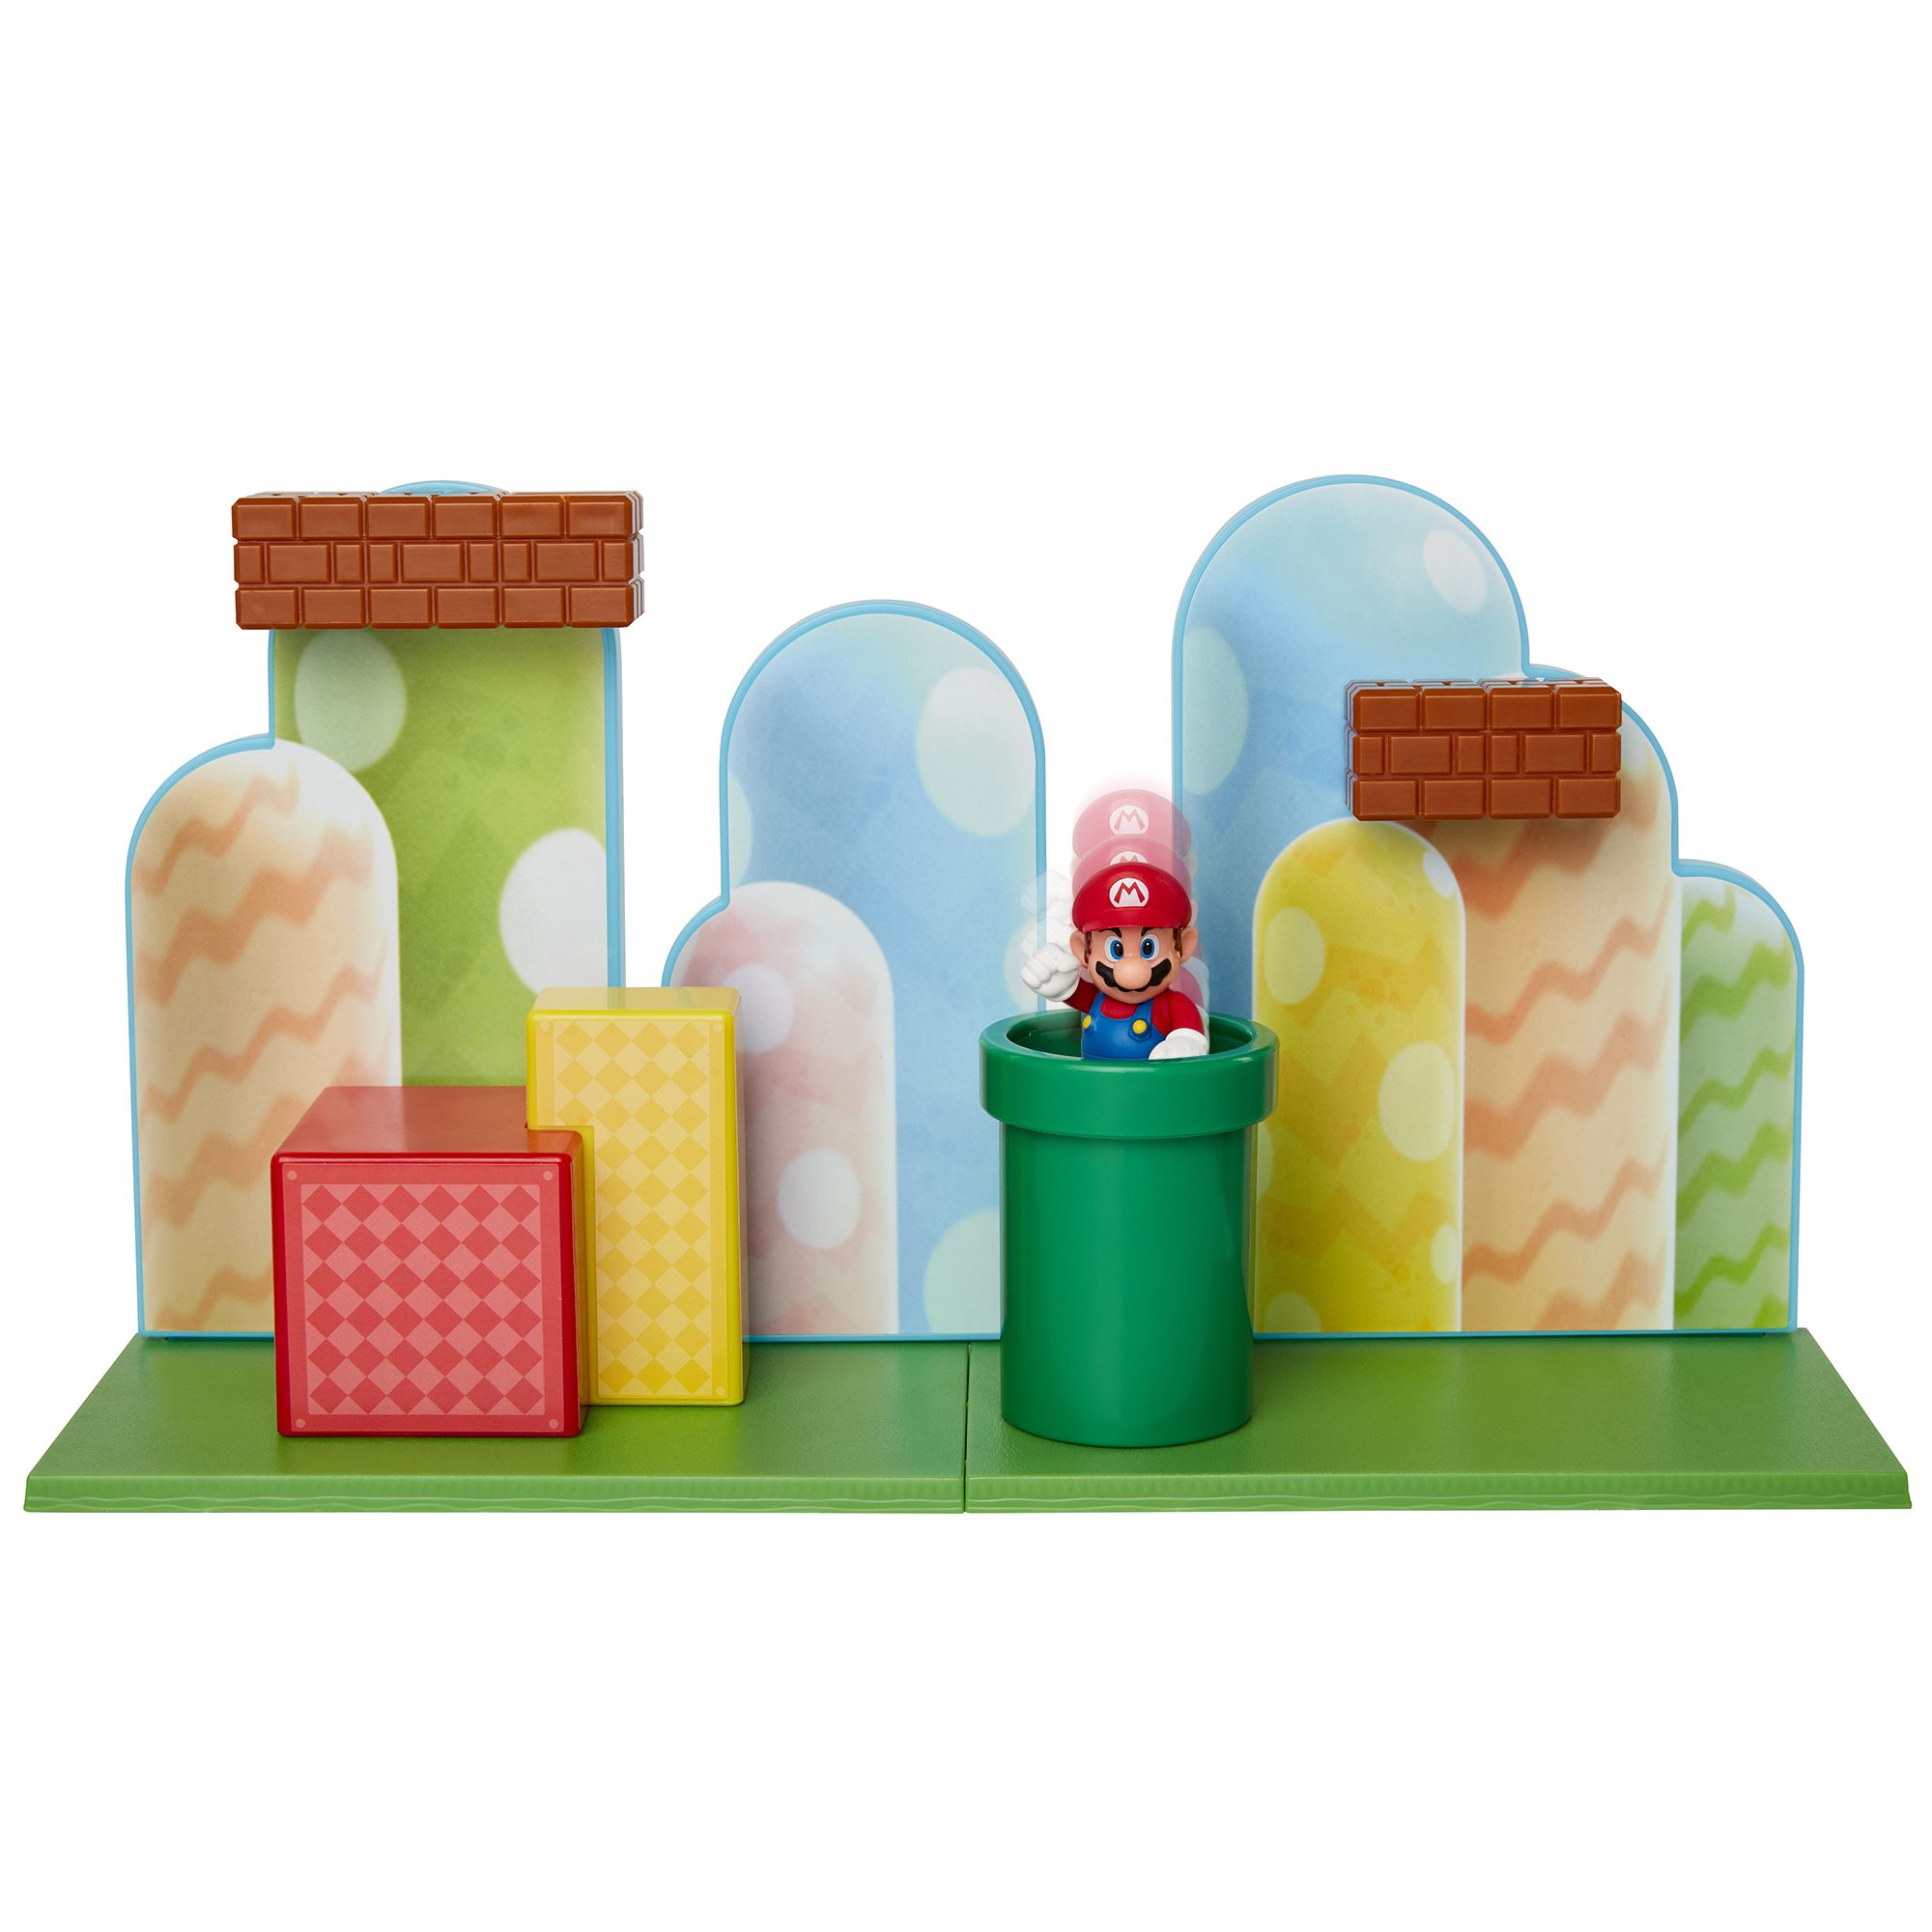 Super Mario 2.5 Acorn Plains Playset